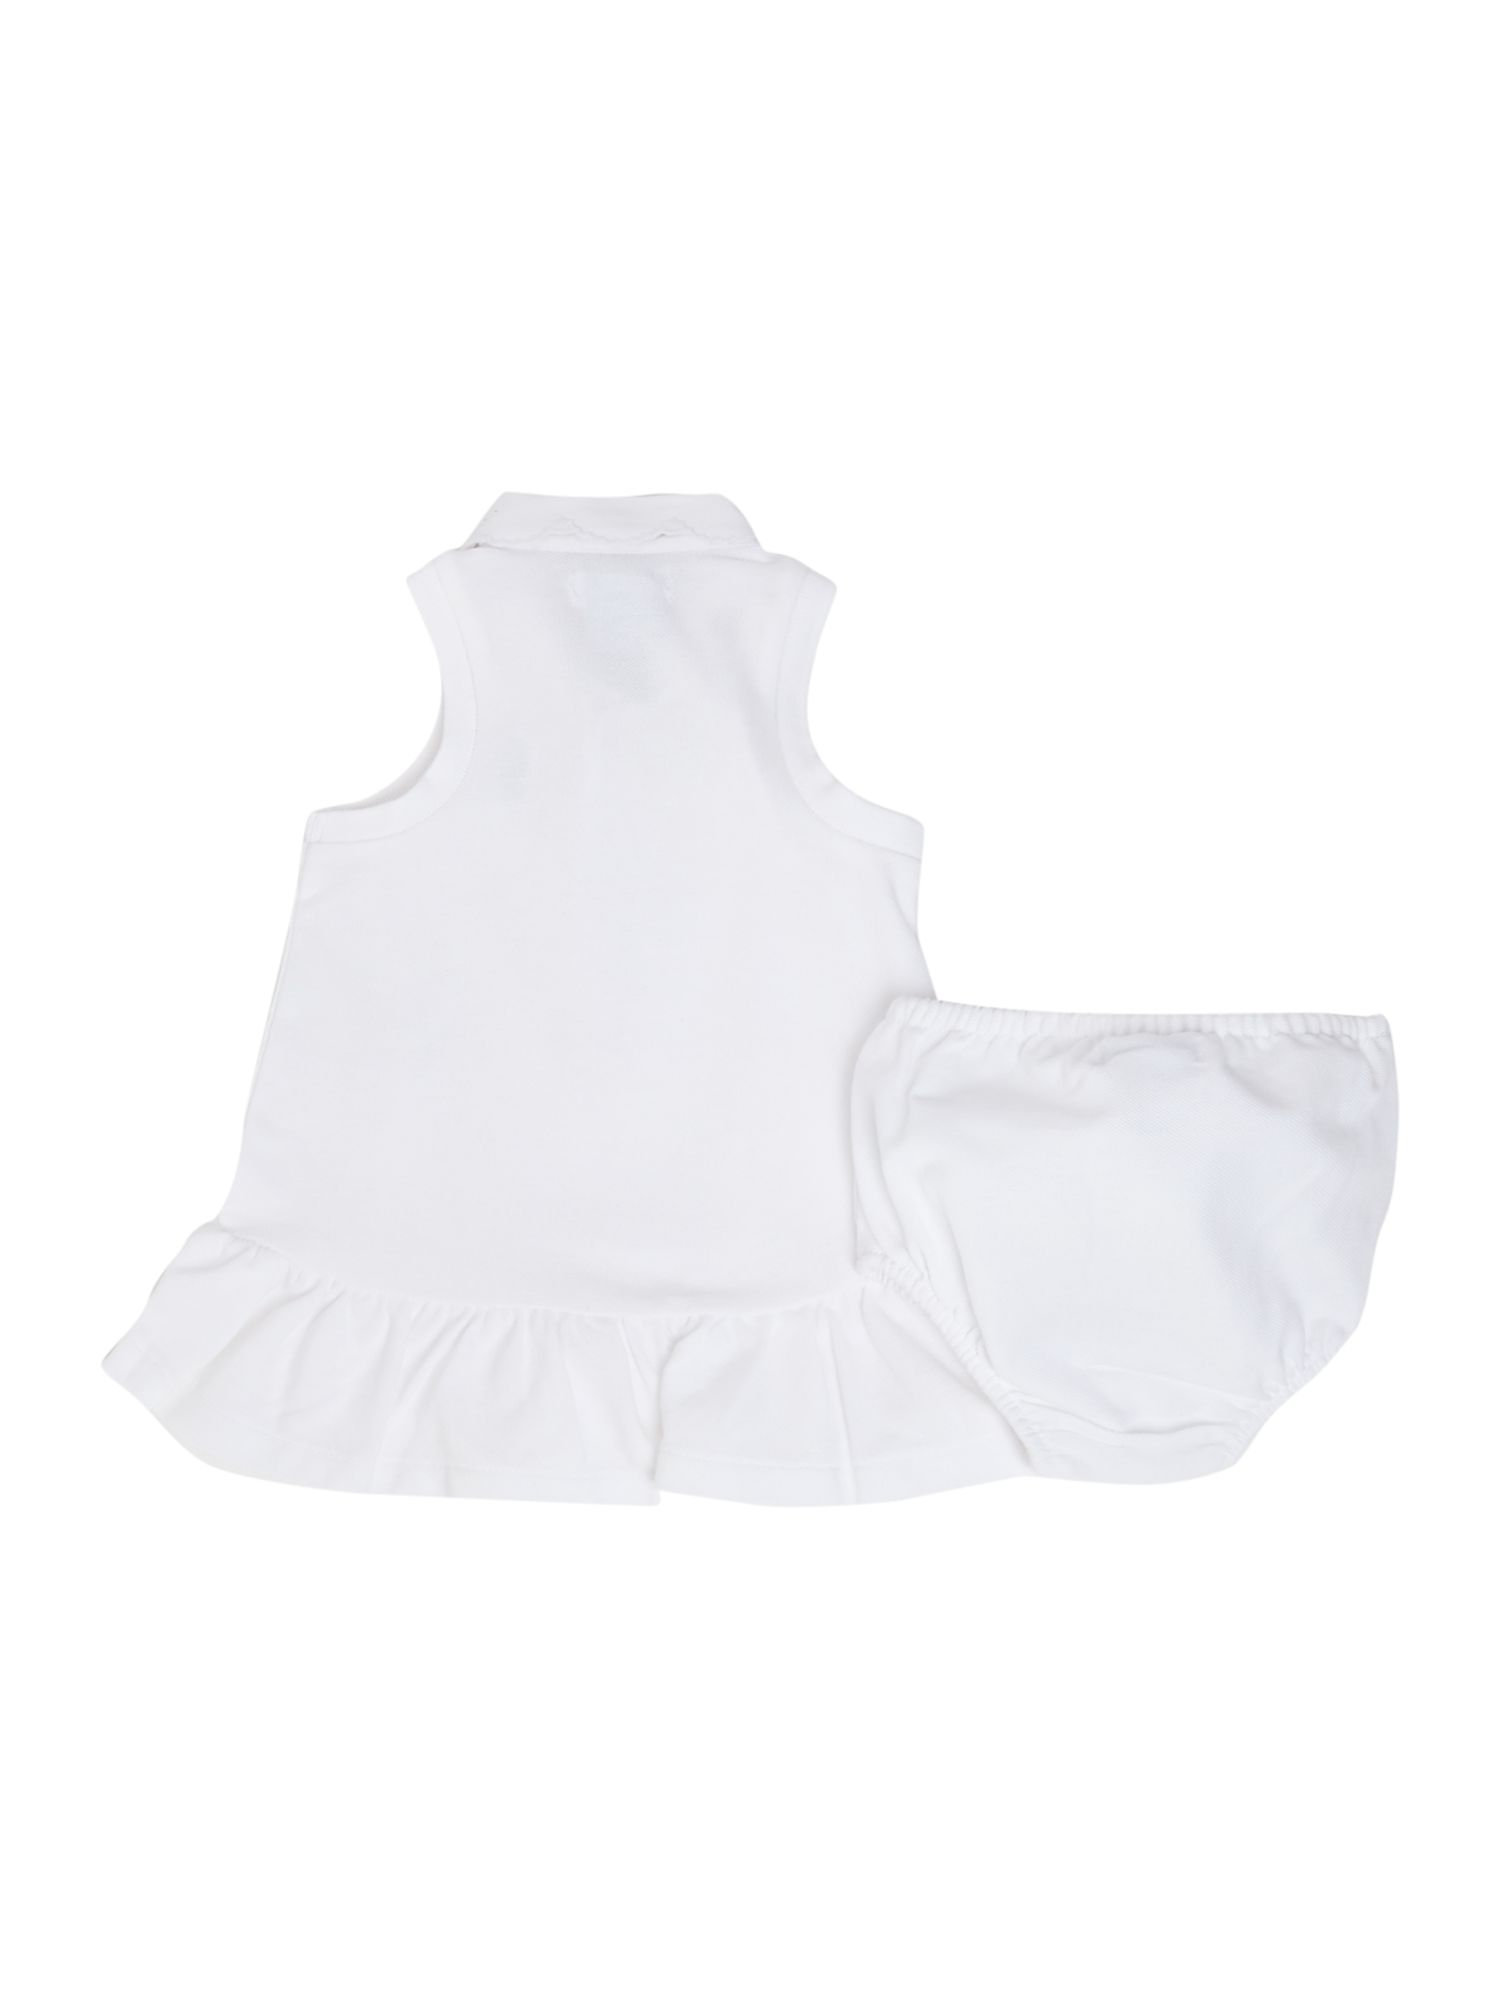 Baby girls broderie collar dress with knickers